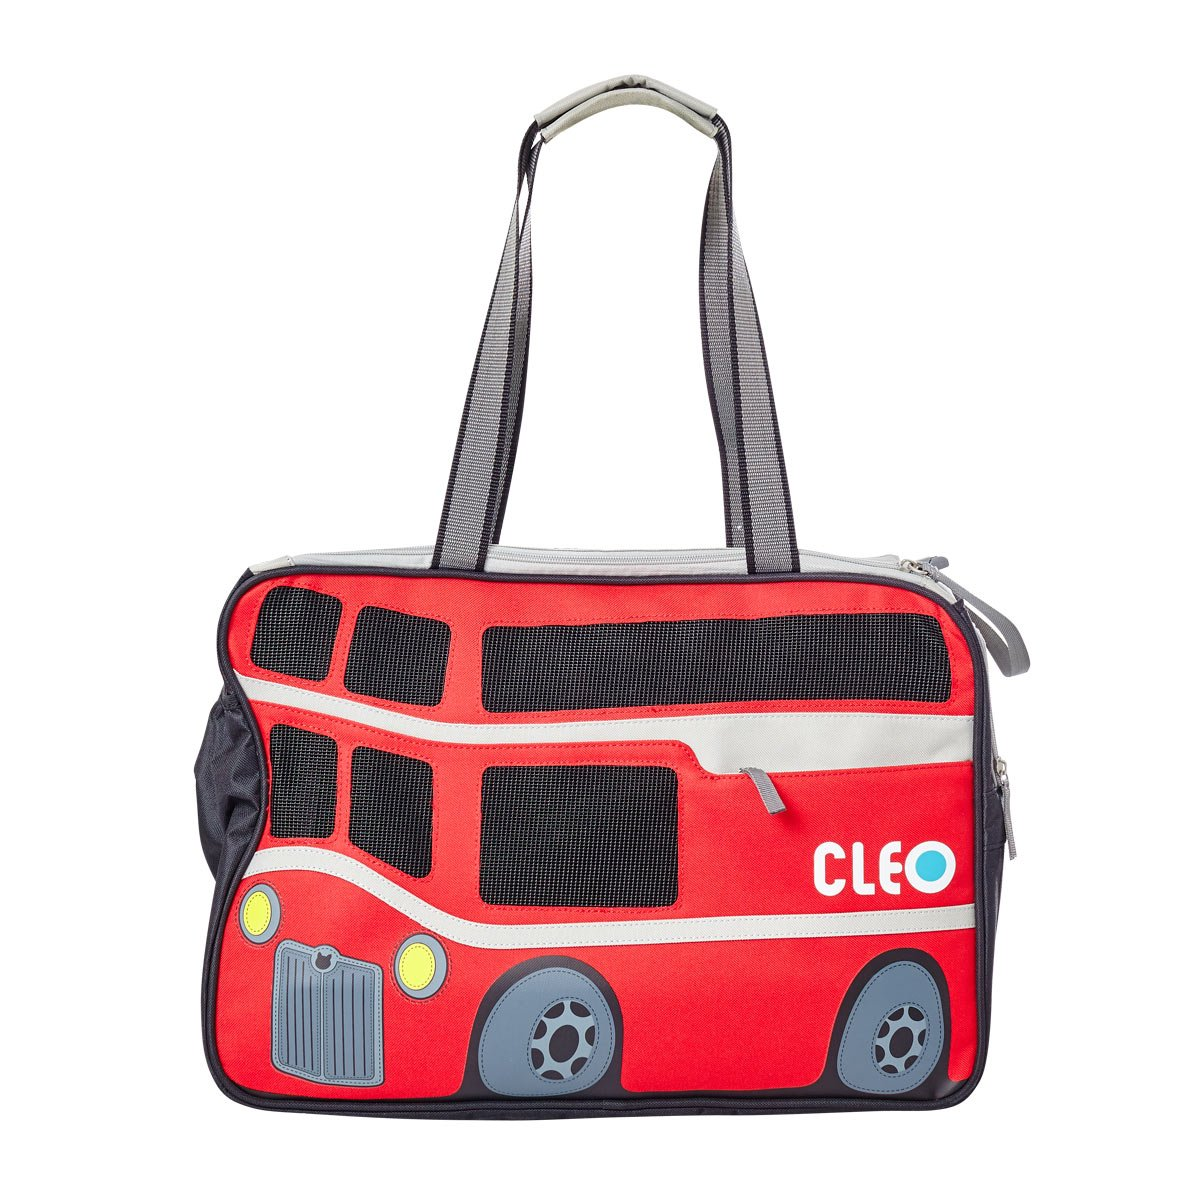 Cleo By Teafco Petobus Airline Approved (18.25'' Medium) Pet Carrier - Carmine Red/Gray